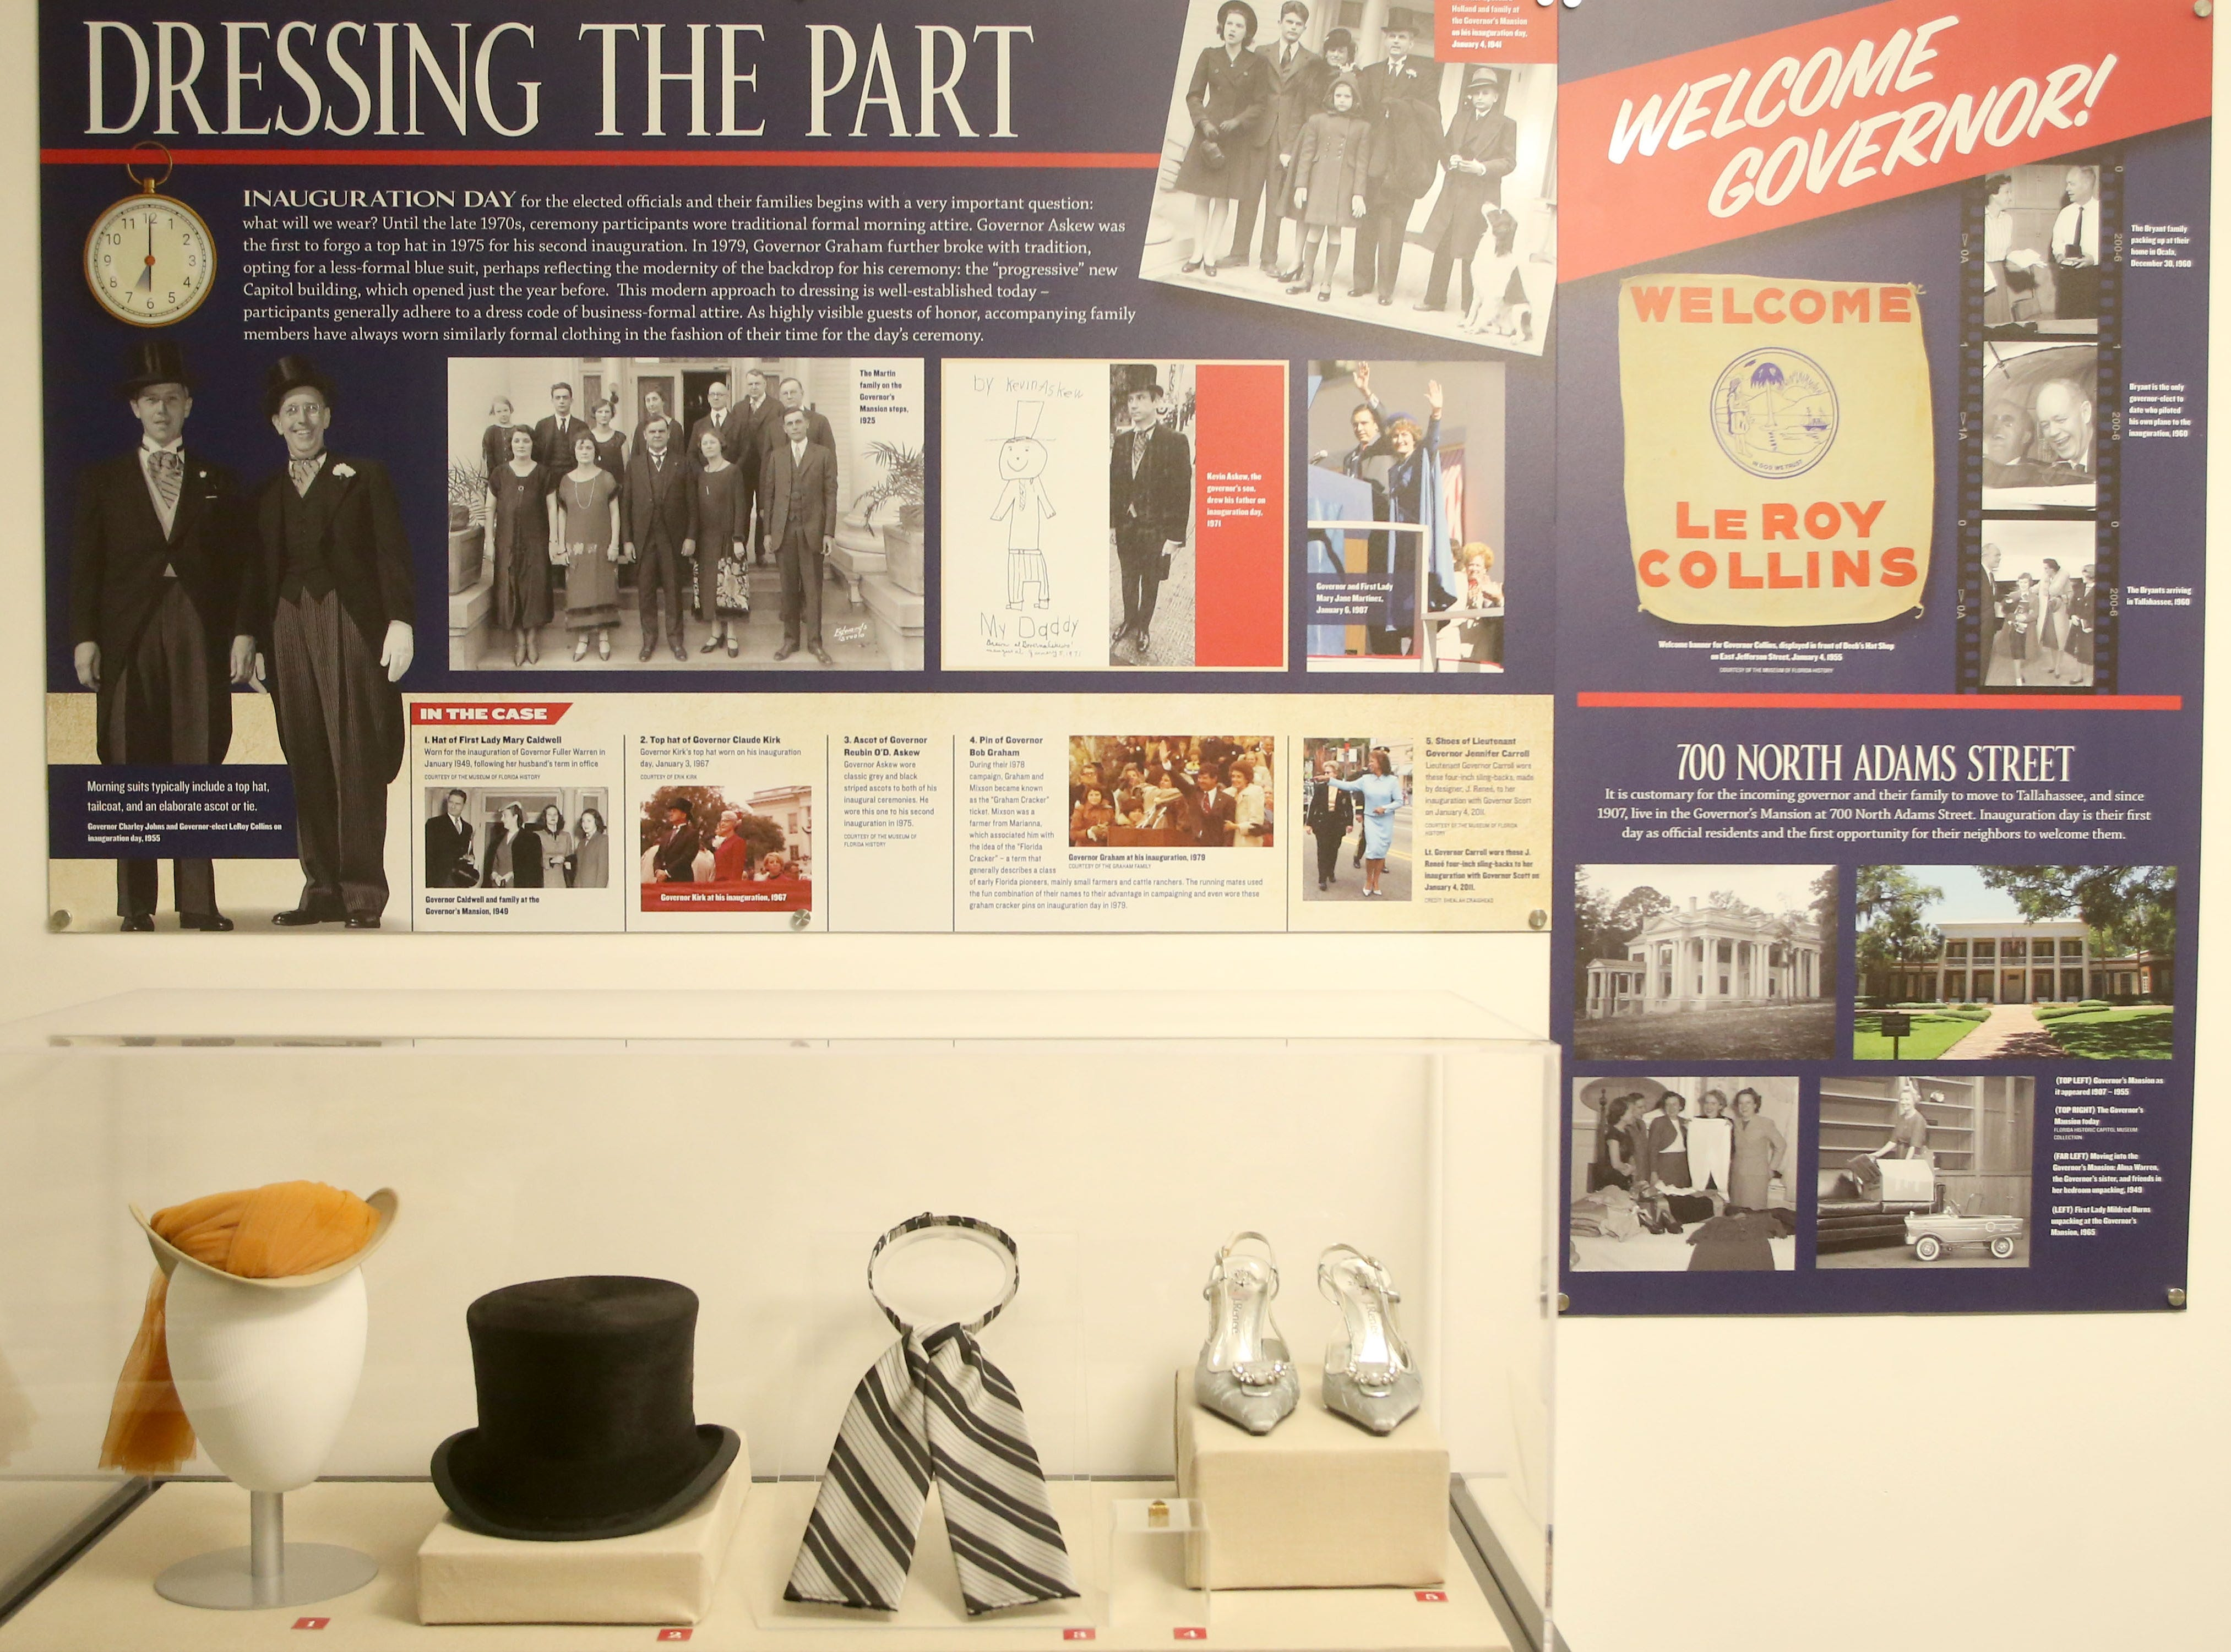 The Tallahassee historic Capitol hosts an exhibit on inaugurations of years past. Displayed in the case are hats, an Ascott, a pin, and shoes that were worn to previous inaugurations by governors or First Ladies. The women's hat, Ascott, and shoes were loaned by the Museum of Florida History for the exhibit, Wednesday, Nov. 28, 2018.